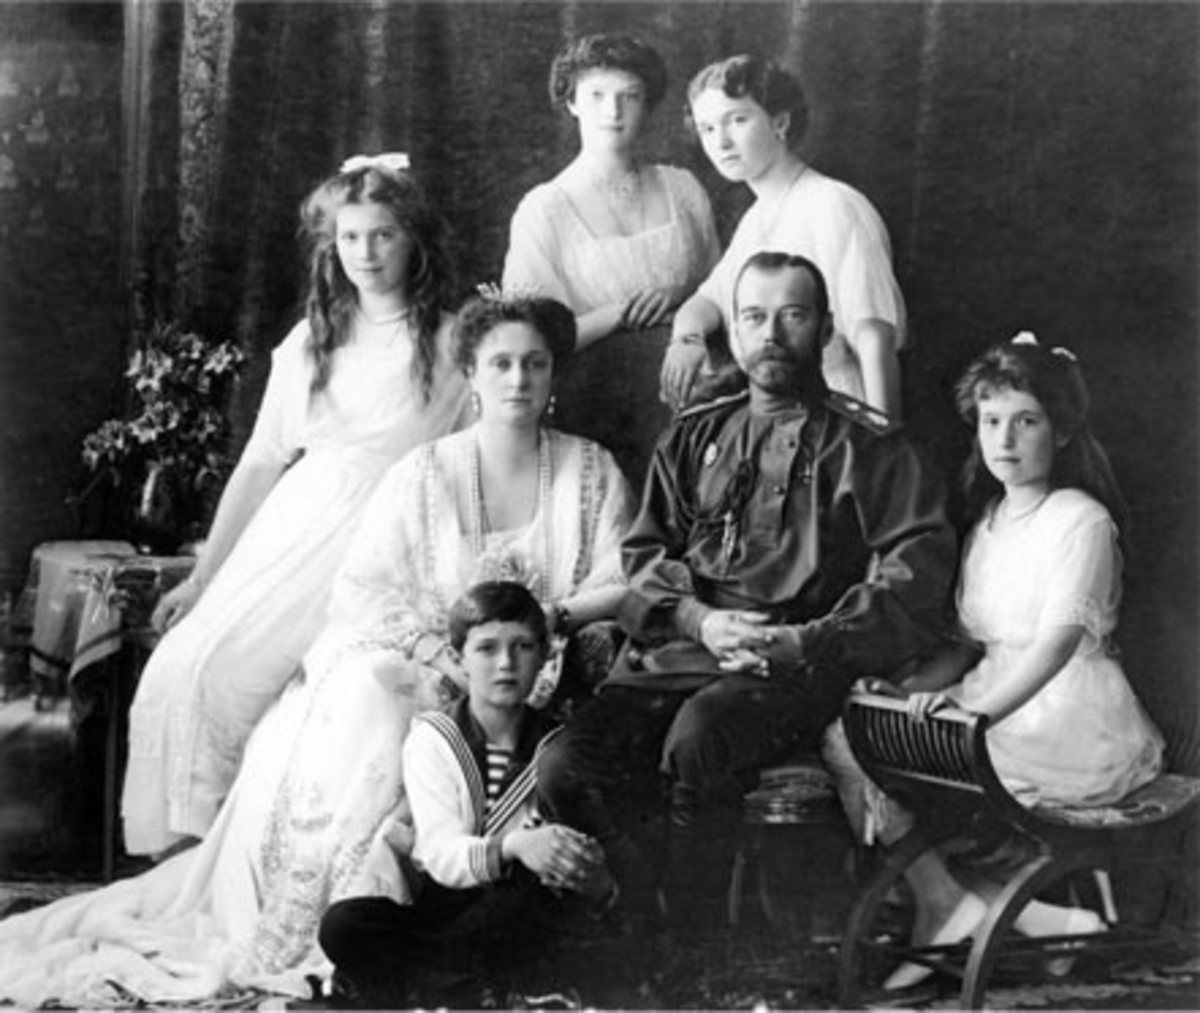 The last Russian Imperial Family.  Left to right standing:  Grand Duchess Tatiana, Grand Duchess Olga.  Left to right sitting:  Grand Duchess Maria and Tsarina Alexandra, Tsarevitch Alexi, Tzar Nicholas II, Grand Duchess Anastasia.